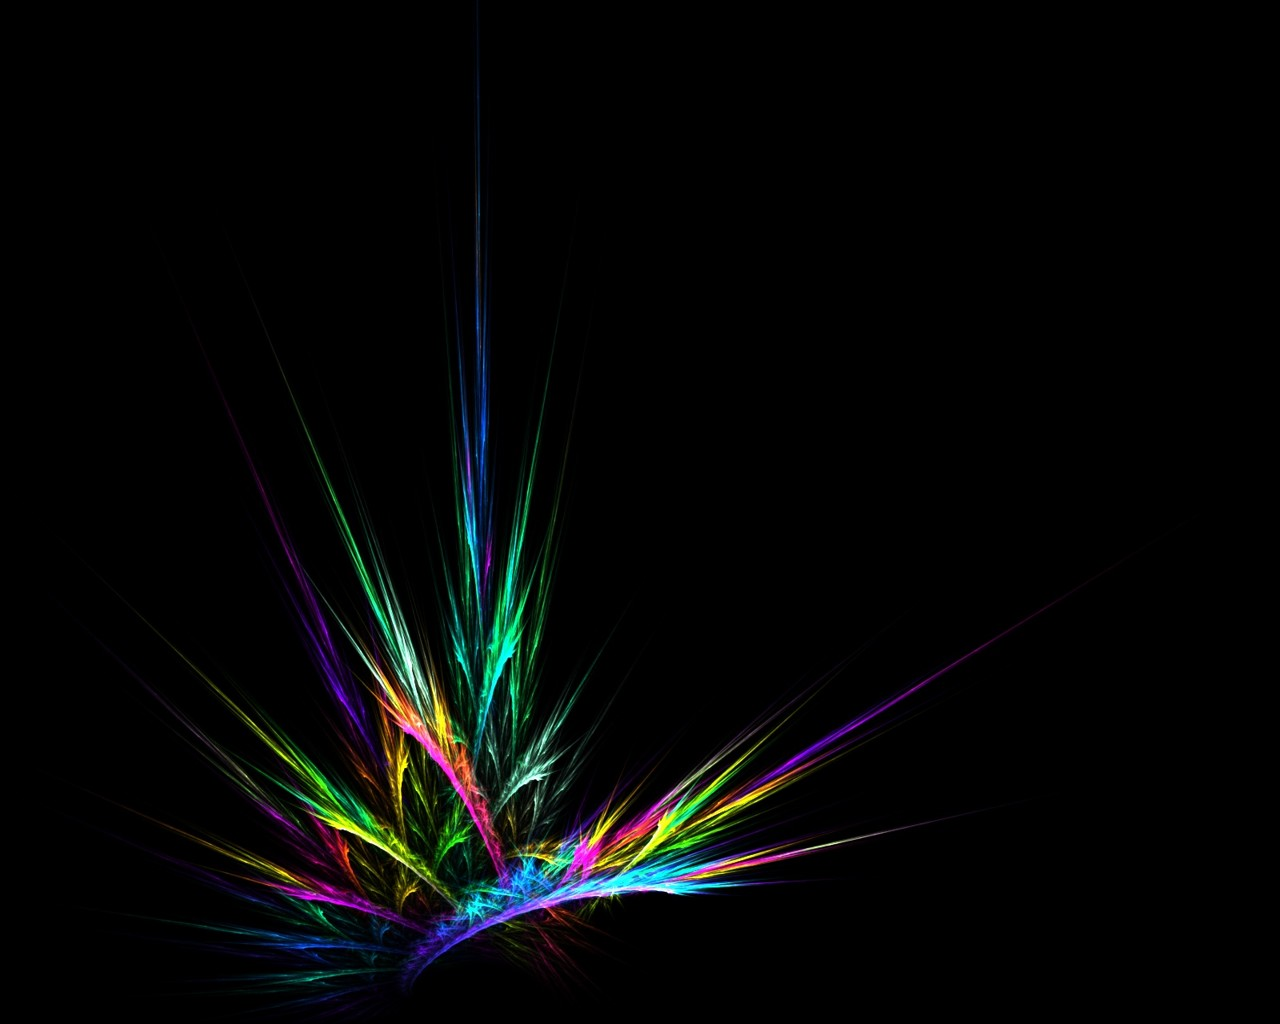 Black Abstract Wallpaper 2204 Hd Wallpapers in Abstract   Imagescicom 1280x1024